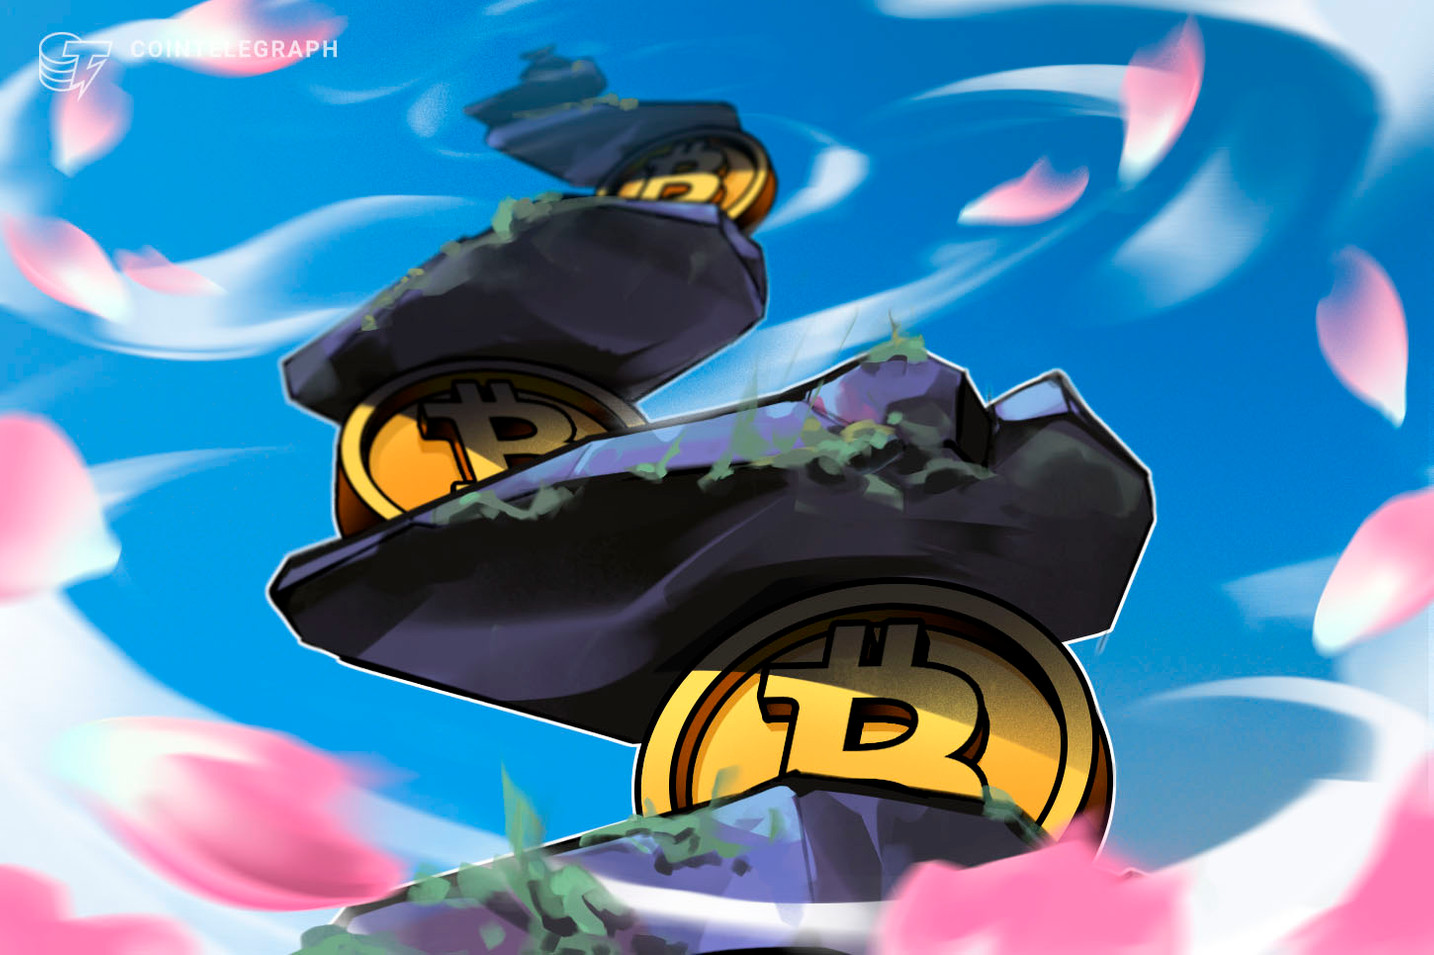 Bitcoin price hits $32K but derivatives metrics still show signs of weakness